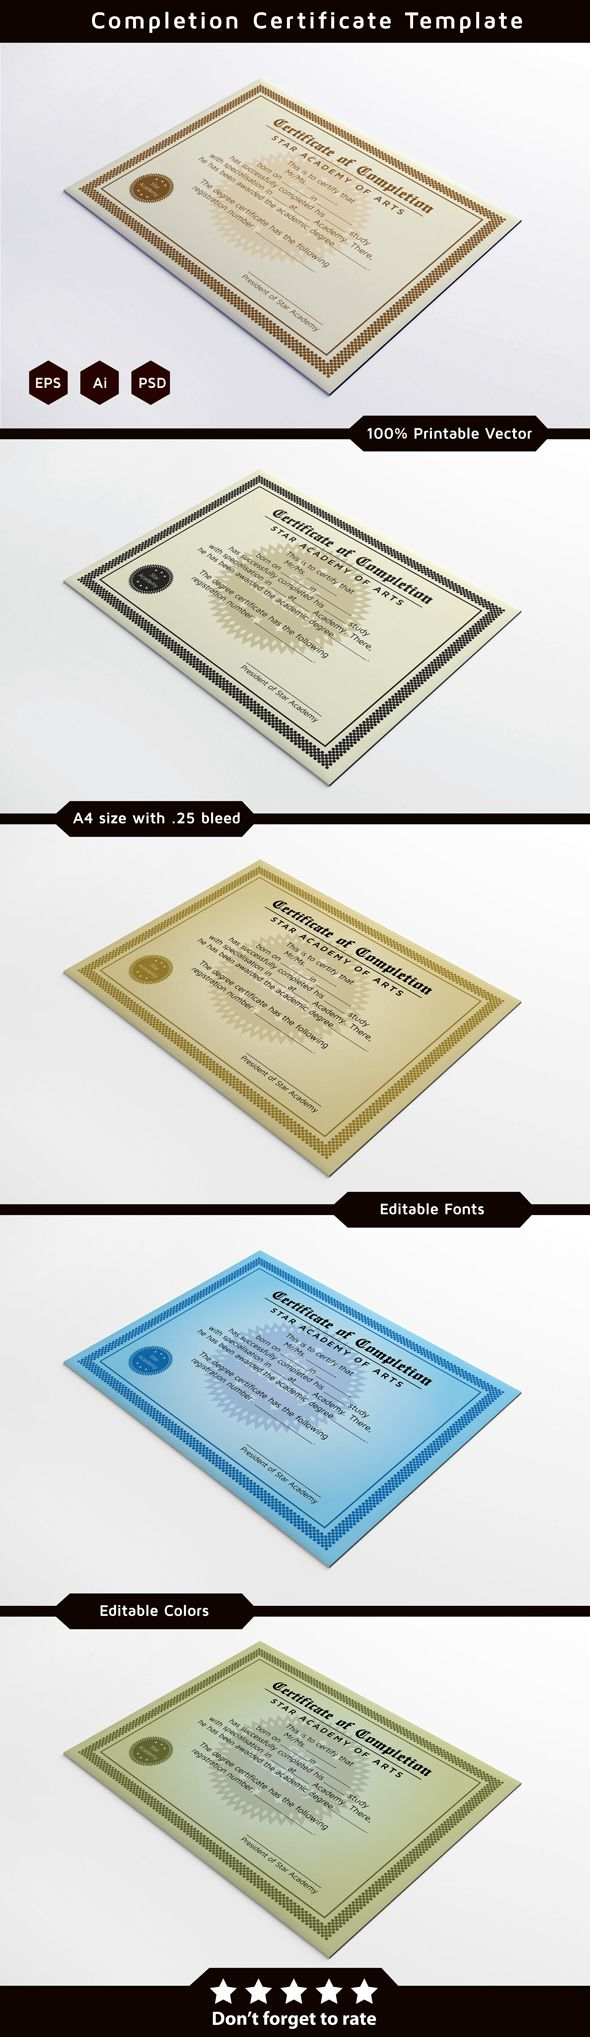 17 best images about certificate design gift completion certificate design